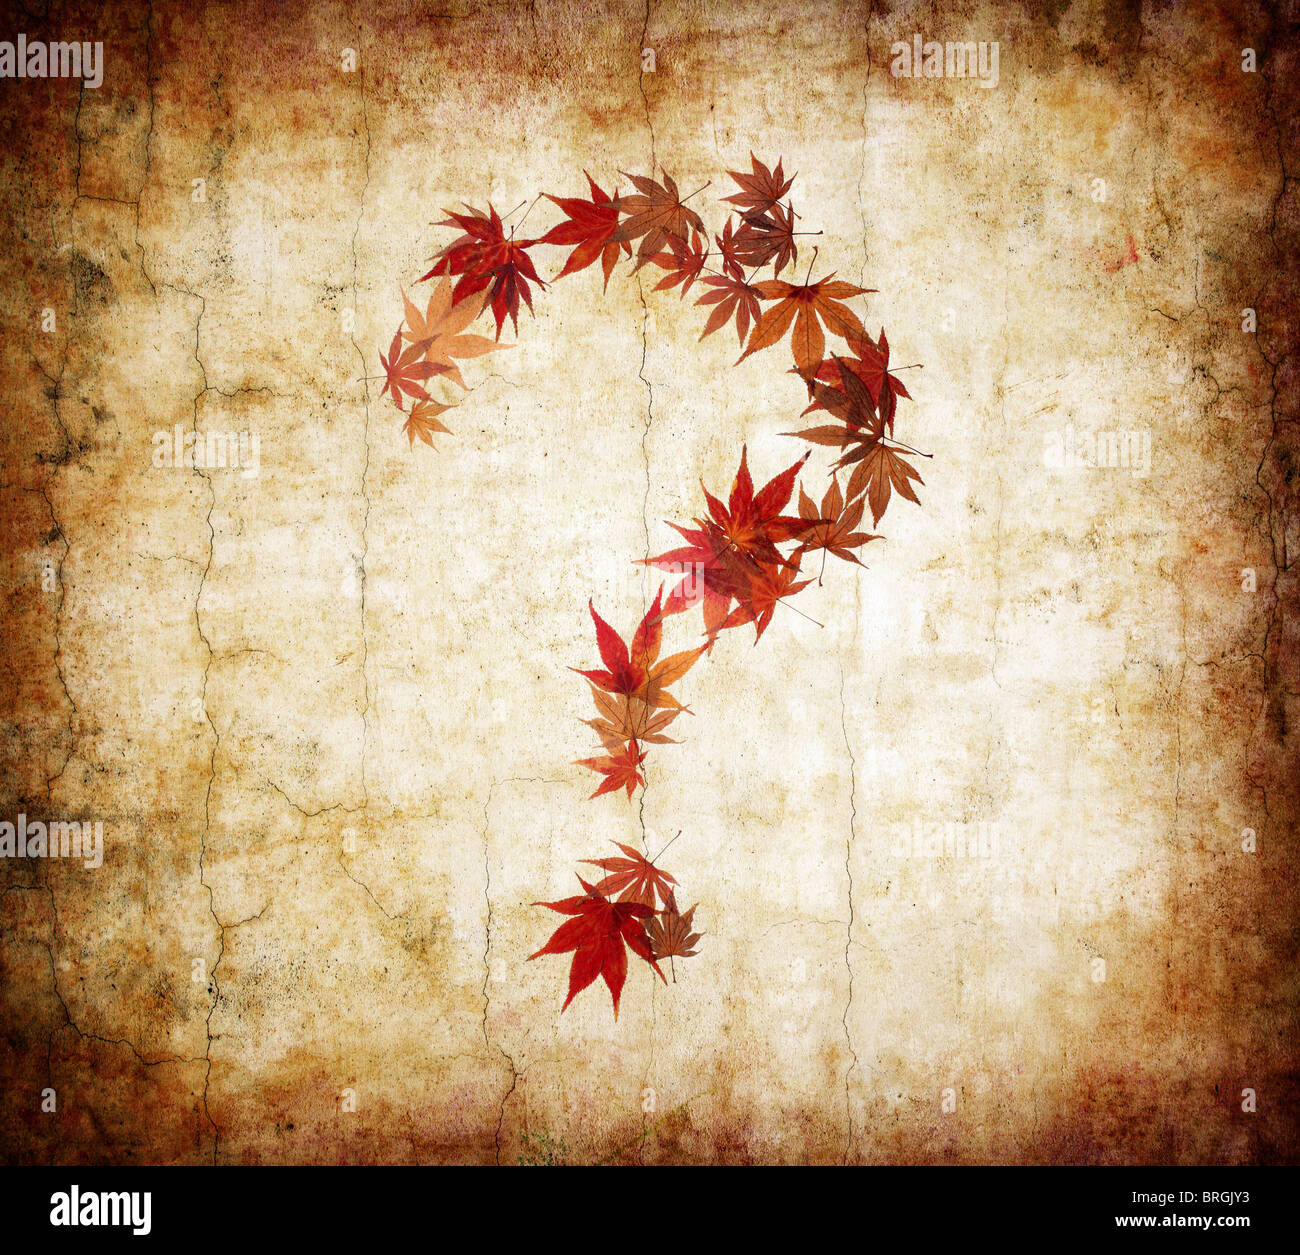 grunge background with question mark made by leaves Stock Photo